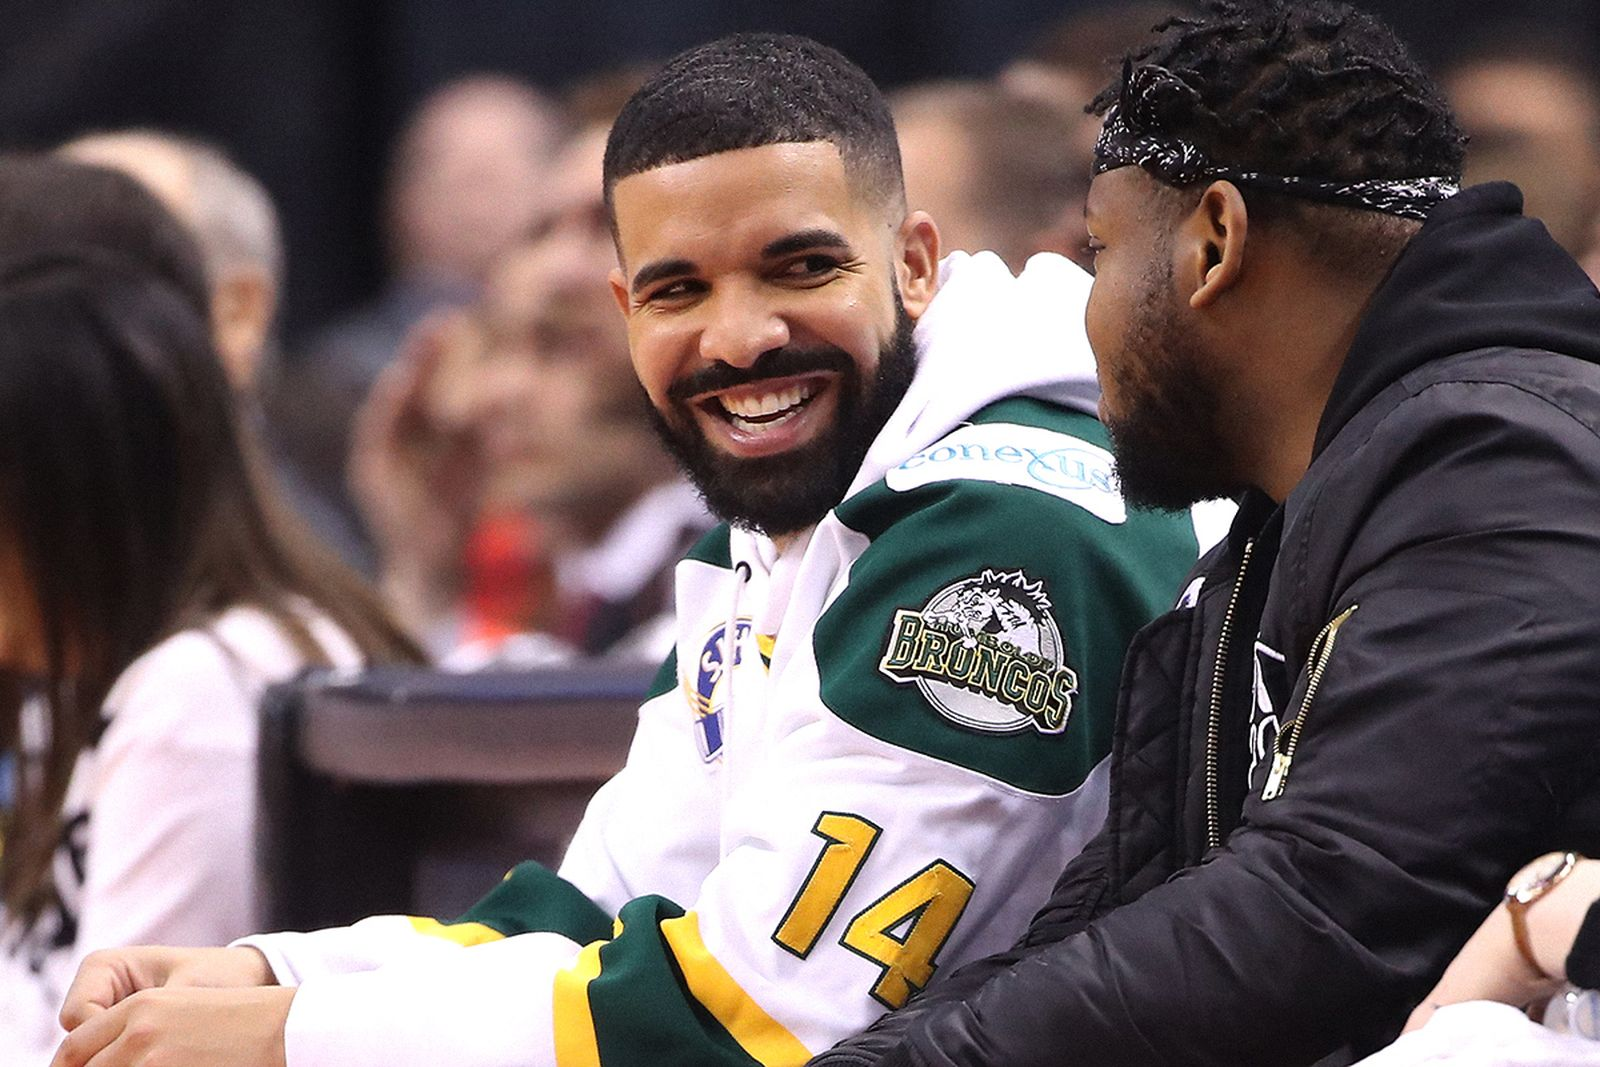 Rap artist Drake smiles as he wears a Humboldt Broncos jersey during the Toronto Raptors game against the Washington Wizards during Game One of the first round of the 2018 NBA Playoffs at Air Canada Centre on April 14, 2018 in Toronto, Canada.